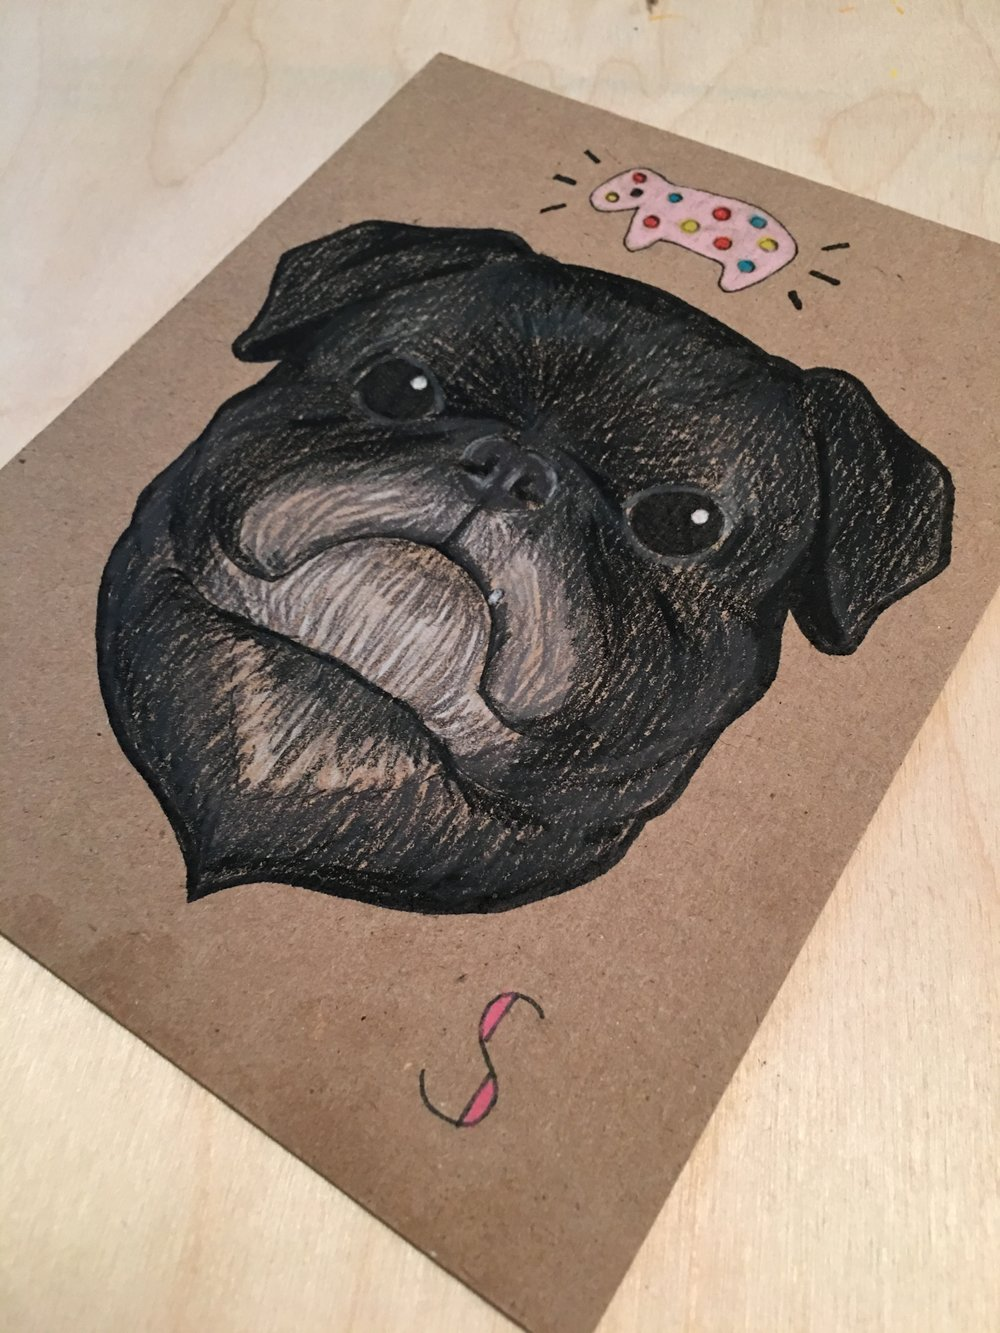 Siouxsie the Pug, 2015